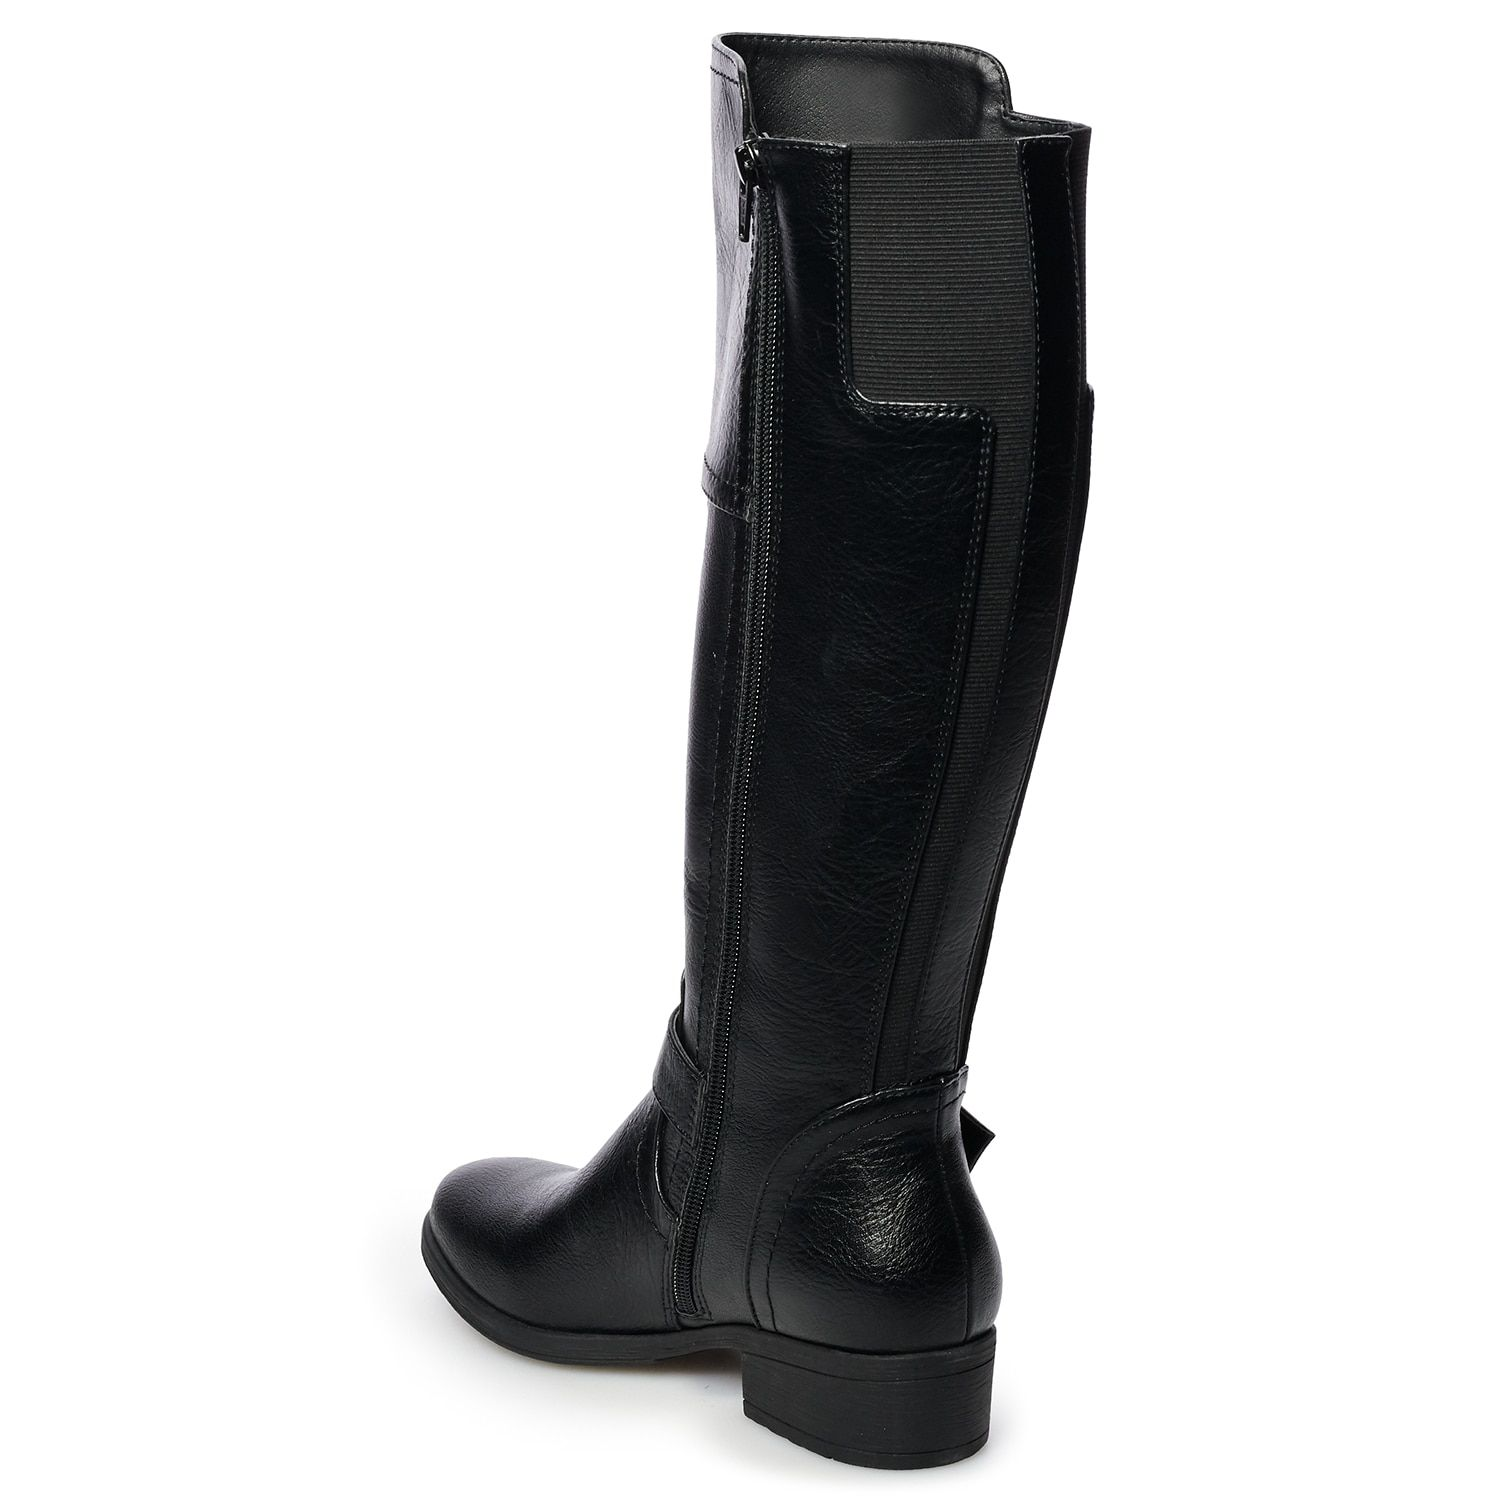 Womens riding boots, Riding boots